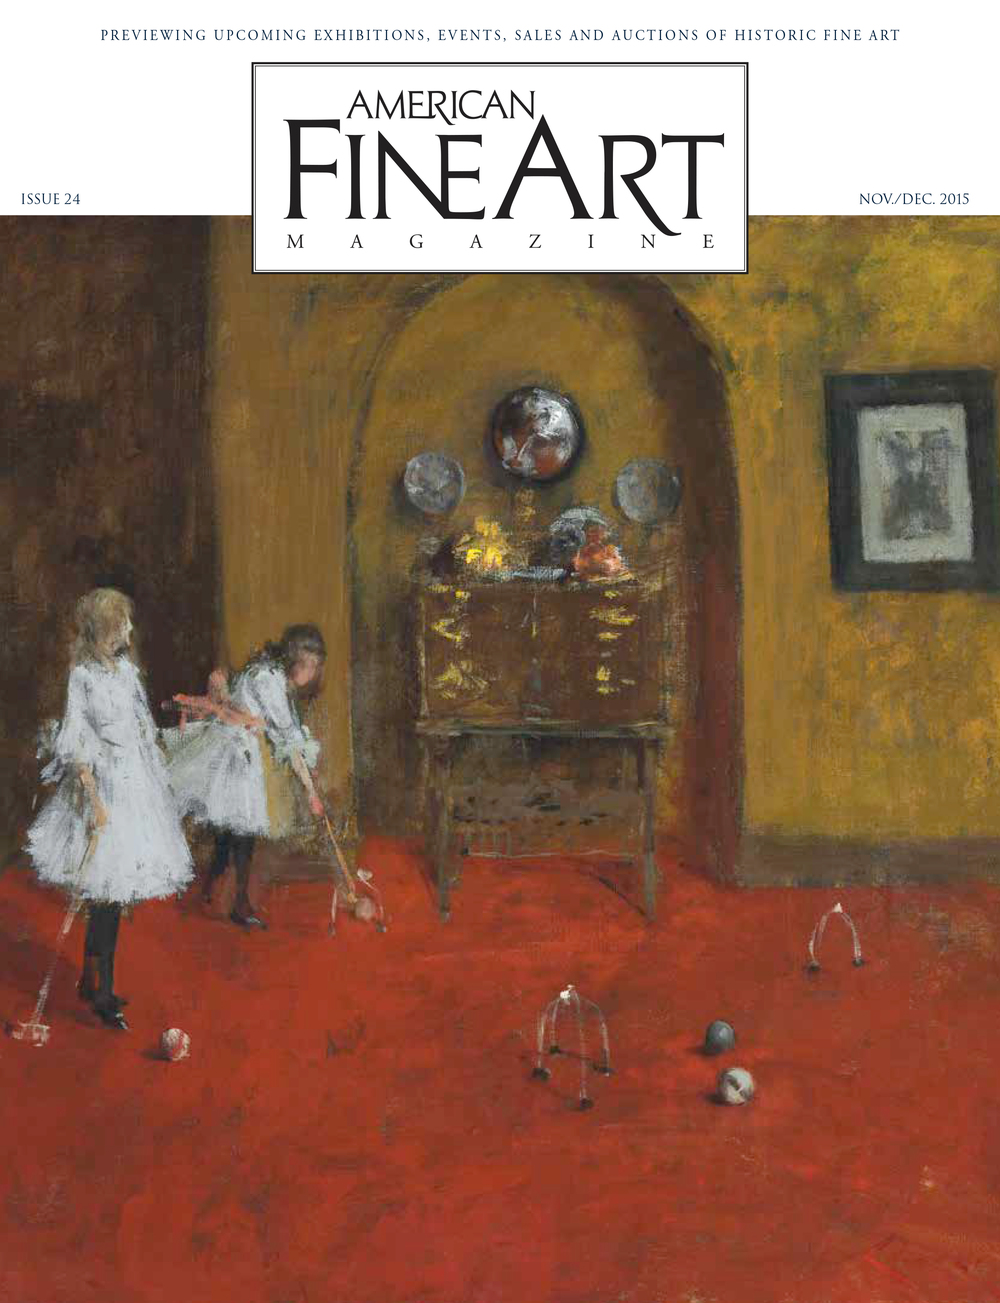 Am-Fine-Art-Cover-Oct15.jpg